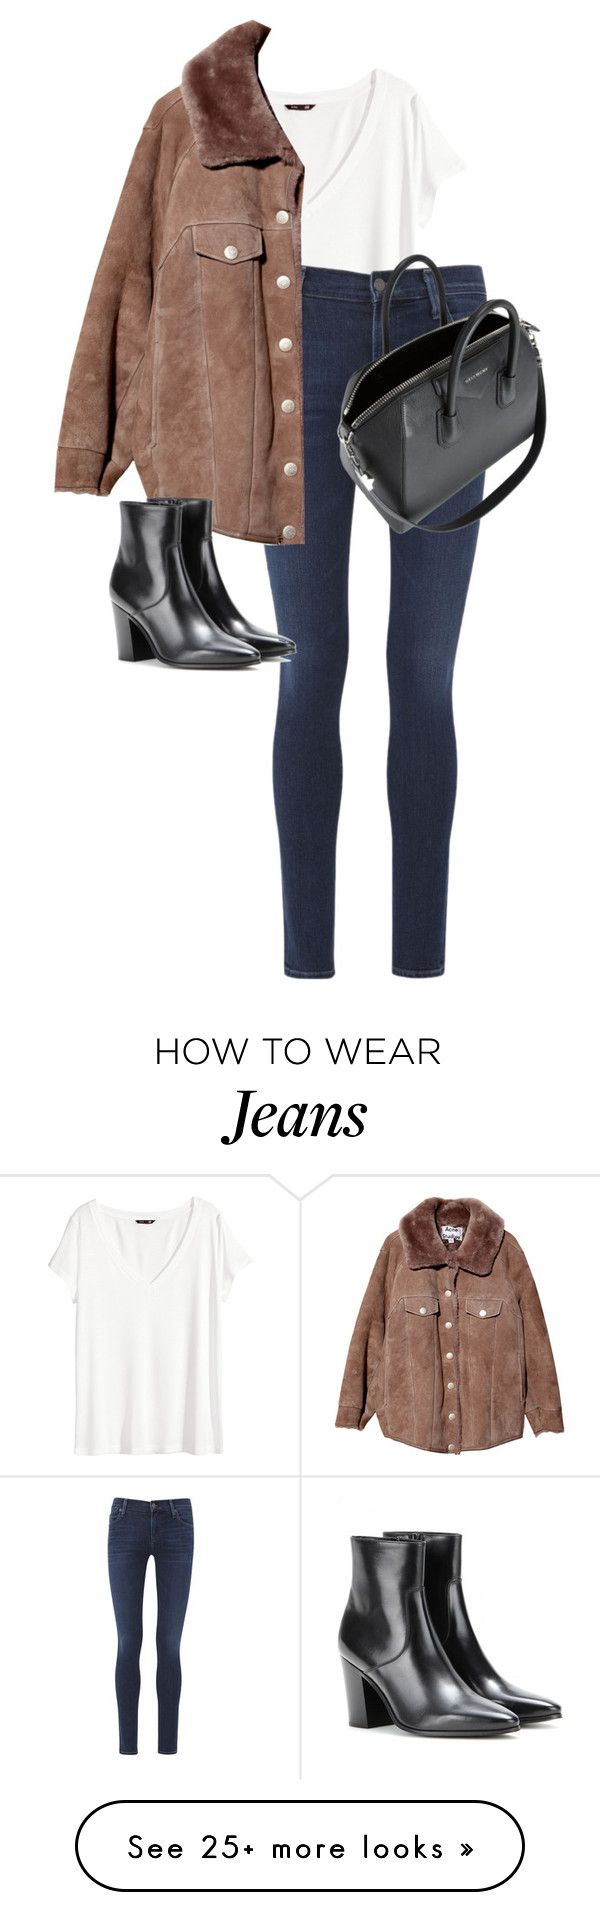 """""""Untitled #10420"""" by alexsrogers on Polyvore featuring H&M, Citizens of Humanity, Acne Studios, Yves Saint Laurent and Givenchy"""